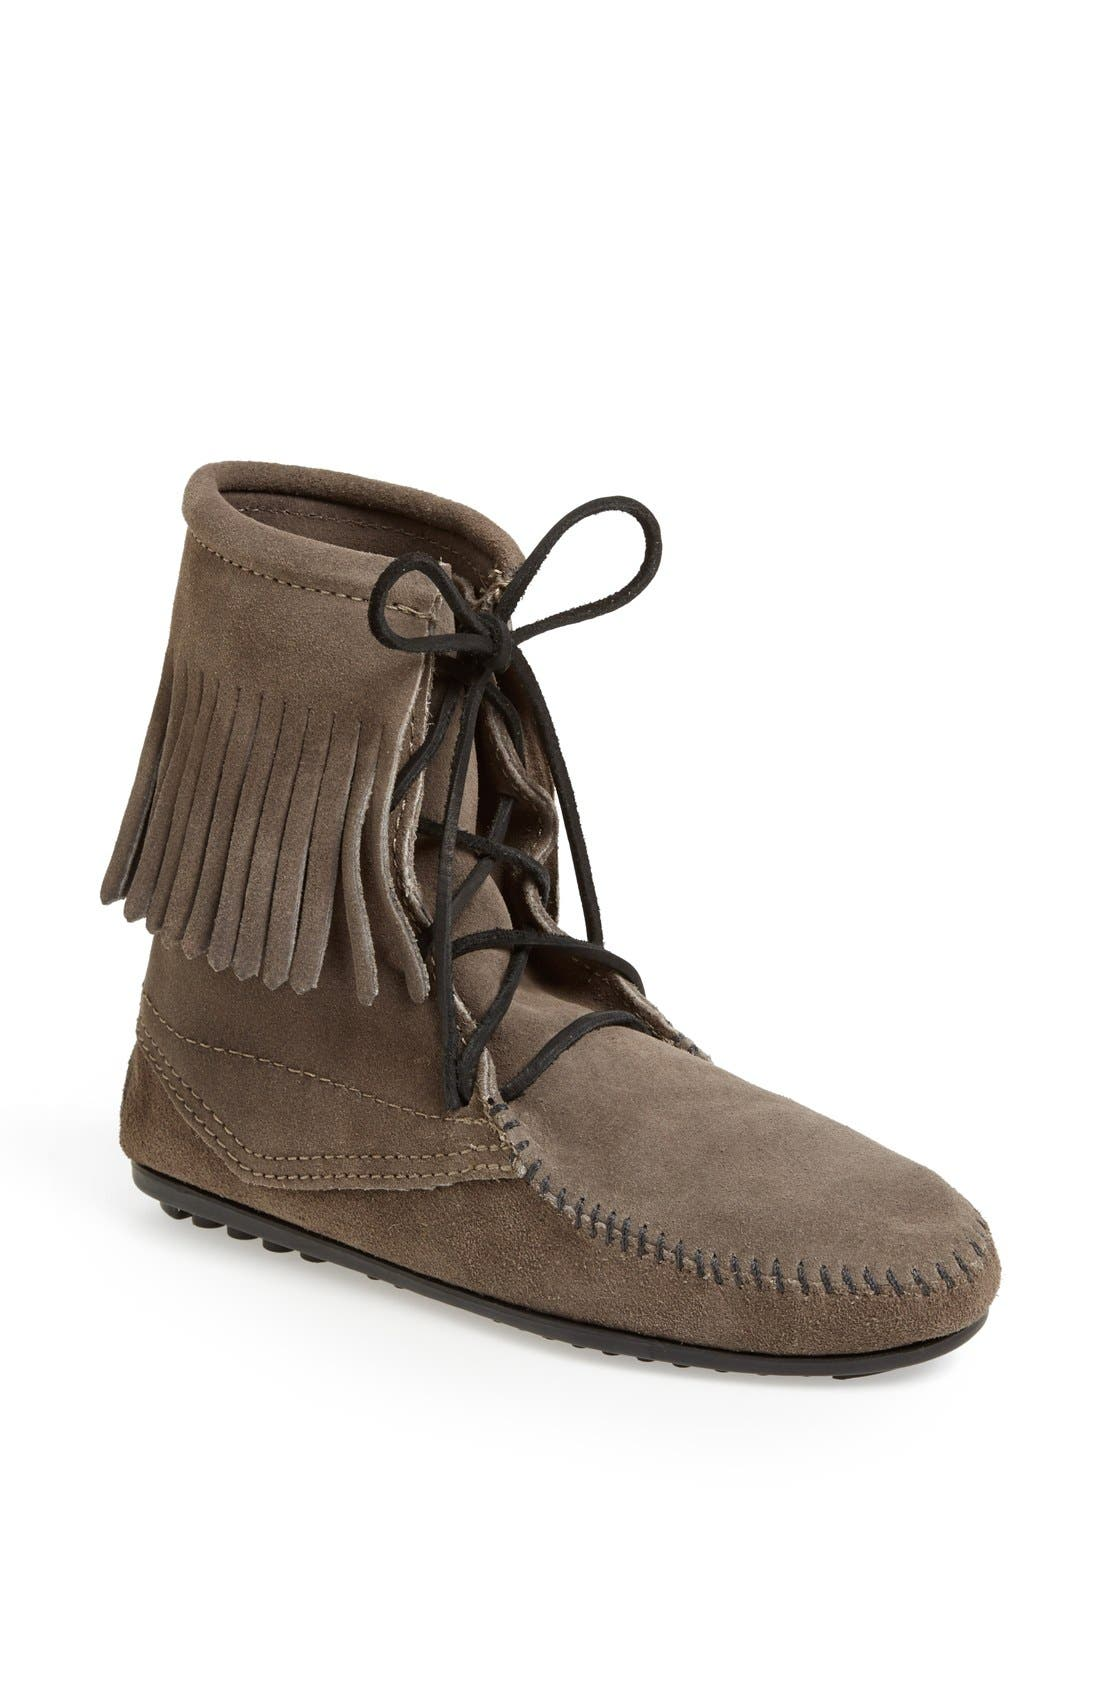 'Tramper' Fringed Suede Ankle Bootie,                             Main thumbnail 1, color,                             039